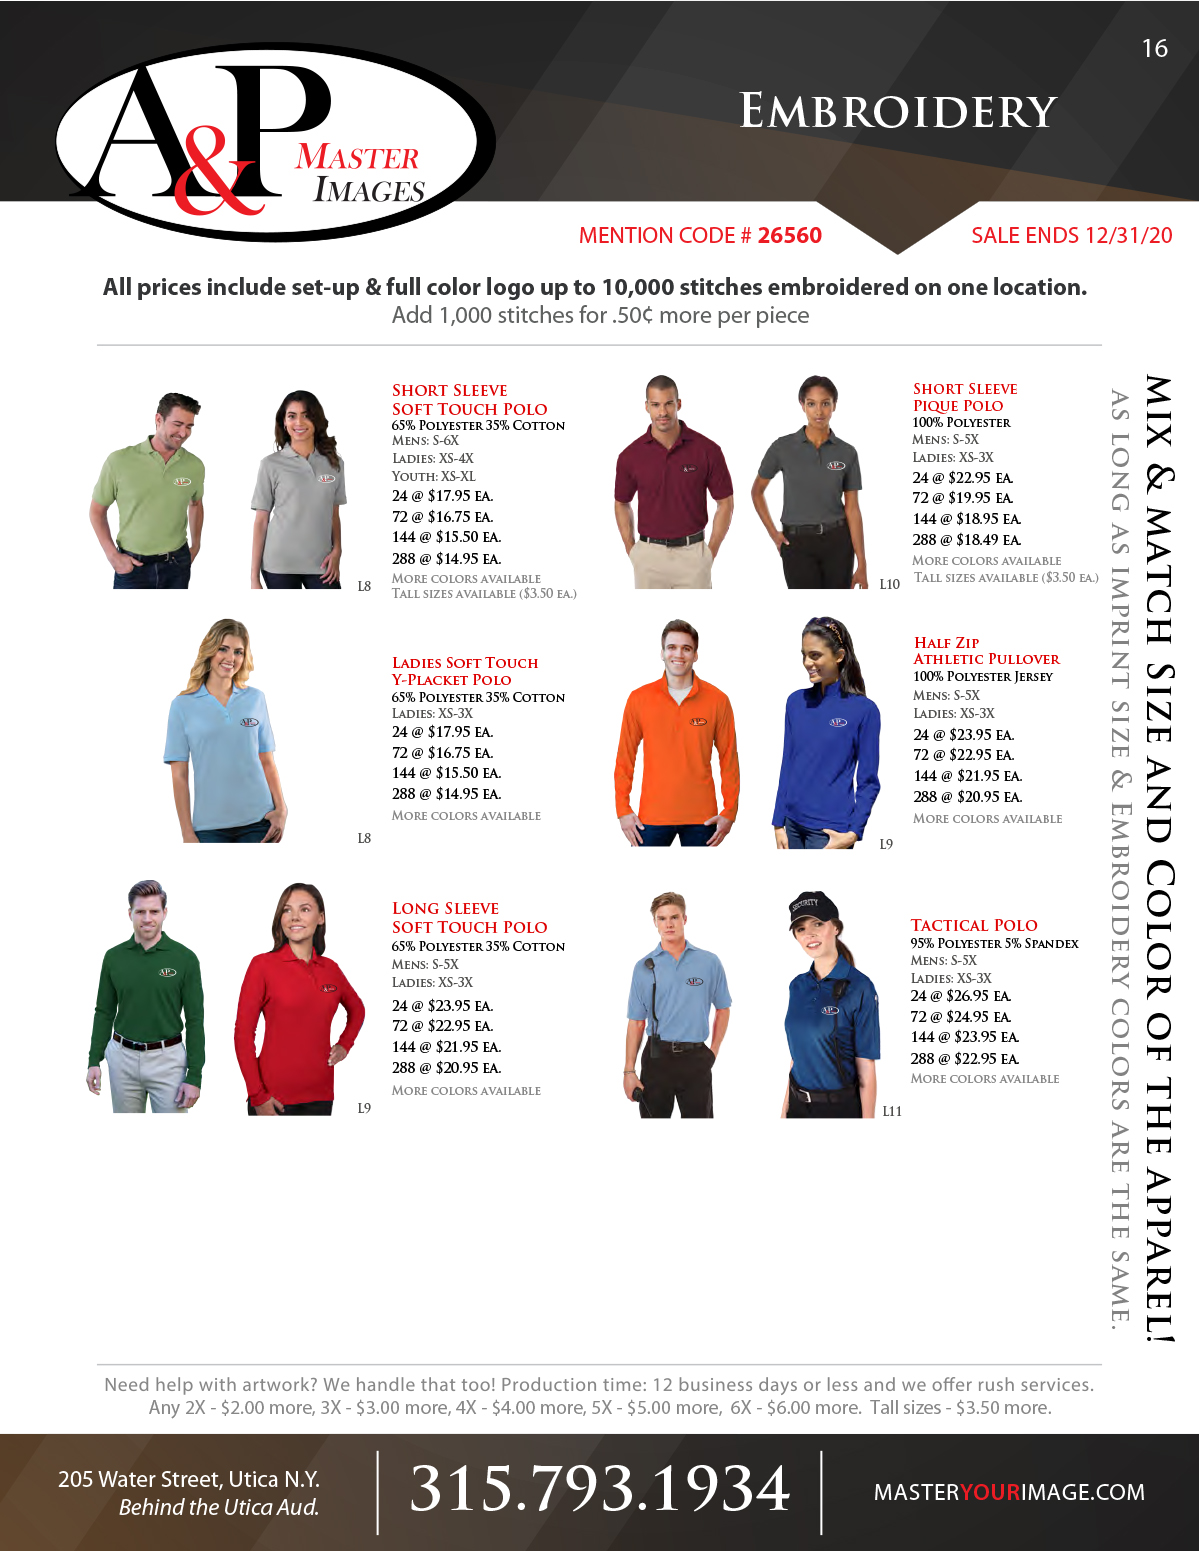 Sales Flyers - Embroidery 06